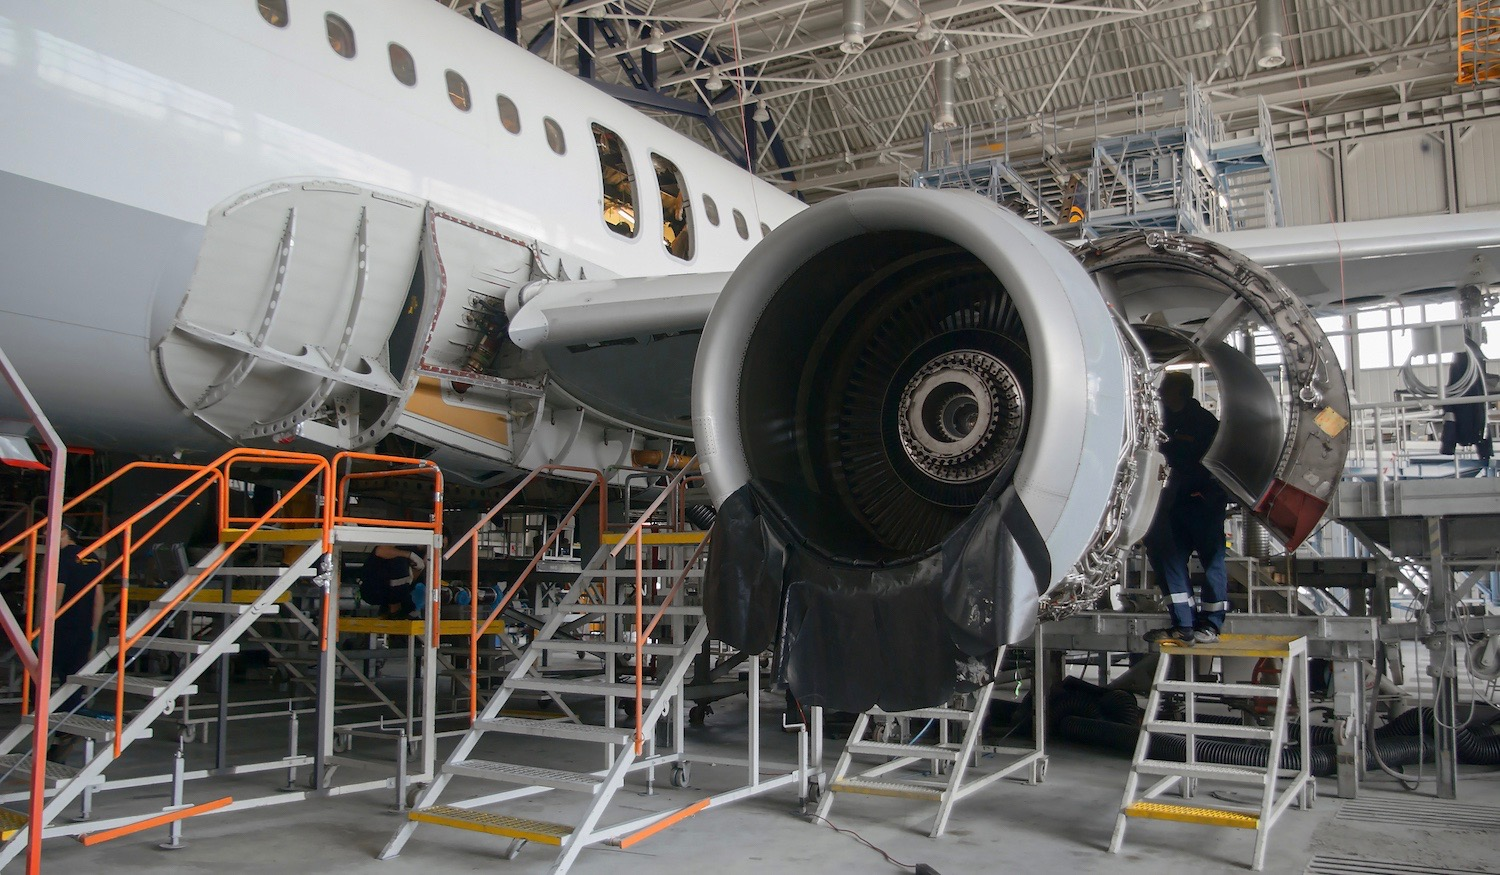 This airplane is disassembled and workers and engineers are seen working during repair and modernisation